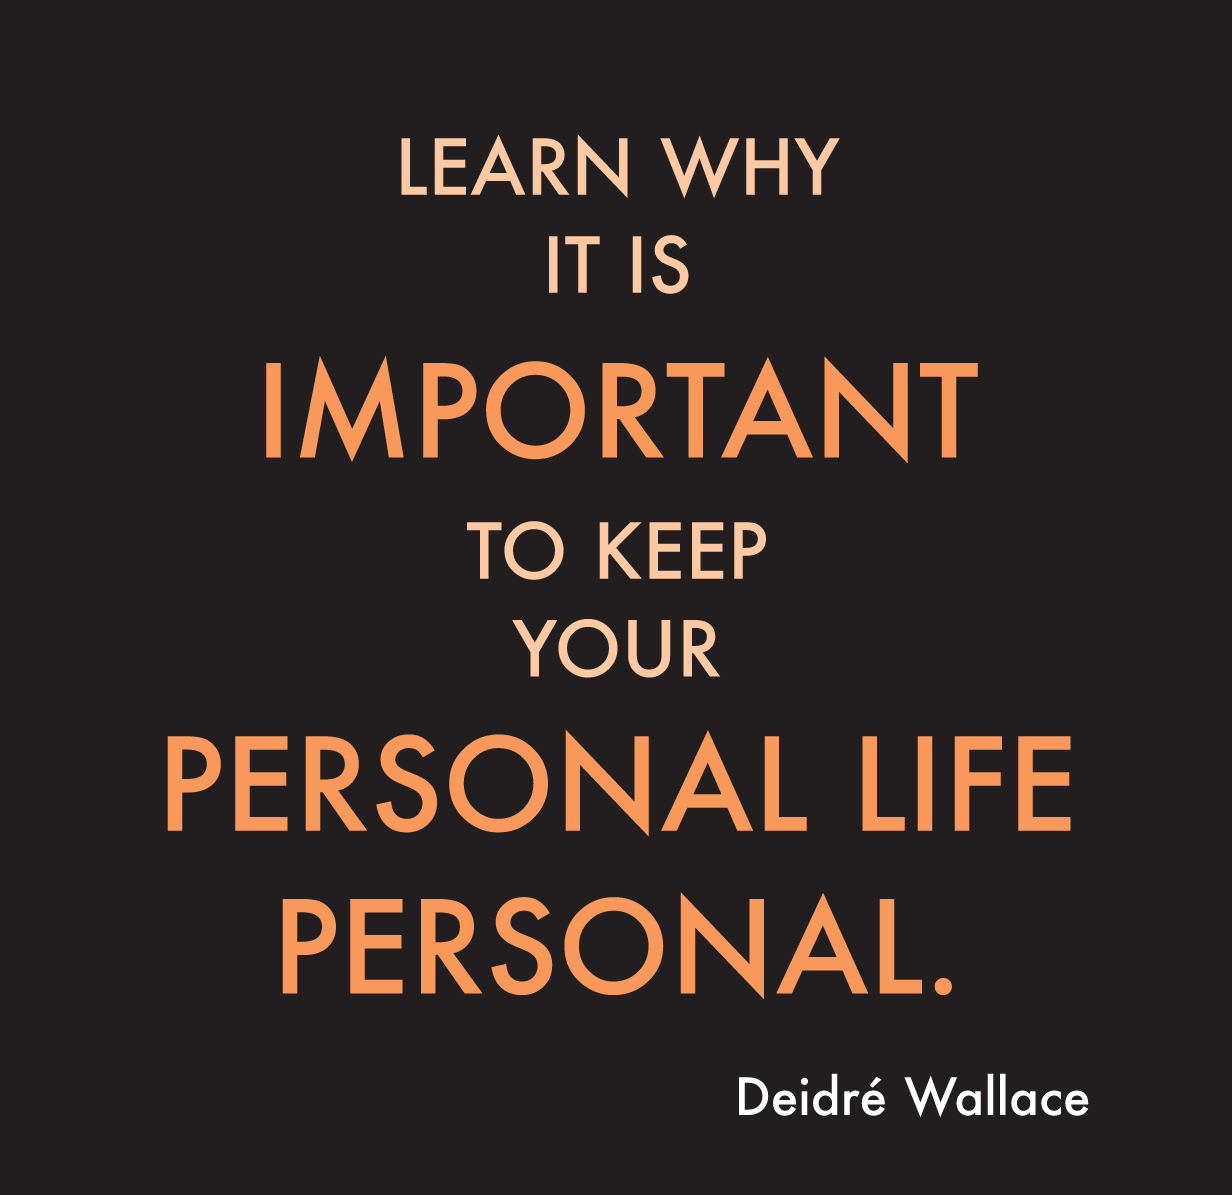 personal why important keep relationship learn realities system